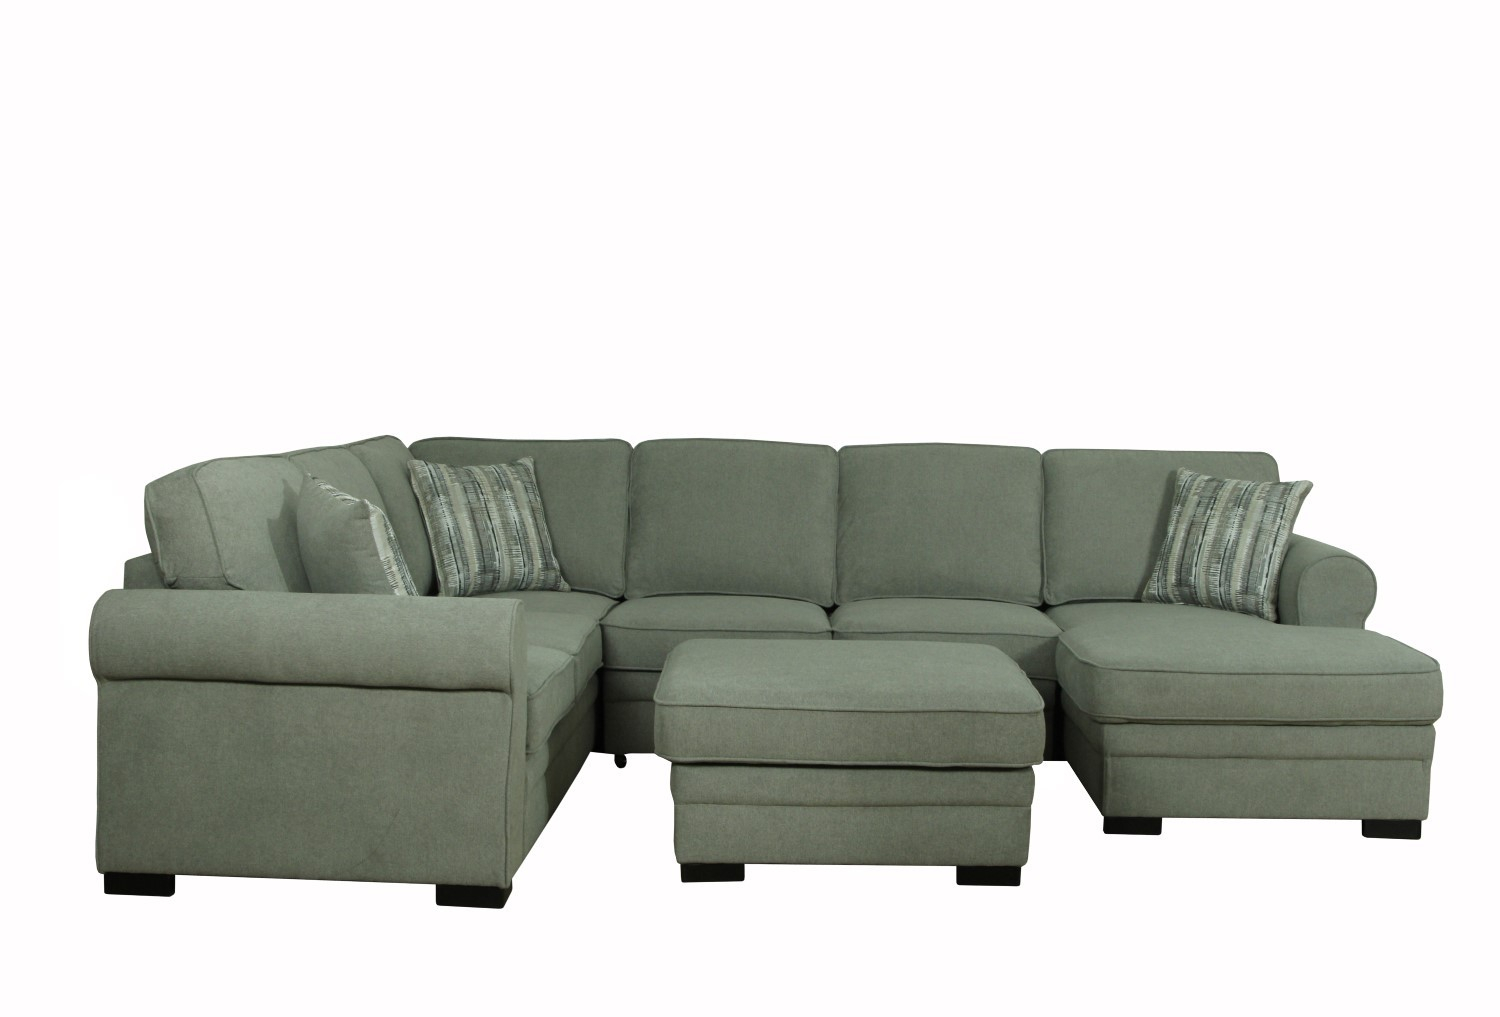 Abigail Sectional | New Year's Sale On 500+ Products Regarding Abigail Ii Sofa Chairs (View 18 of 20)